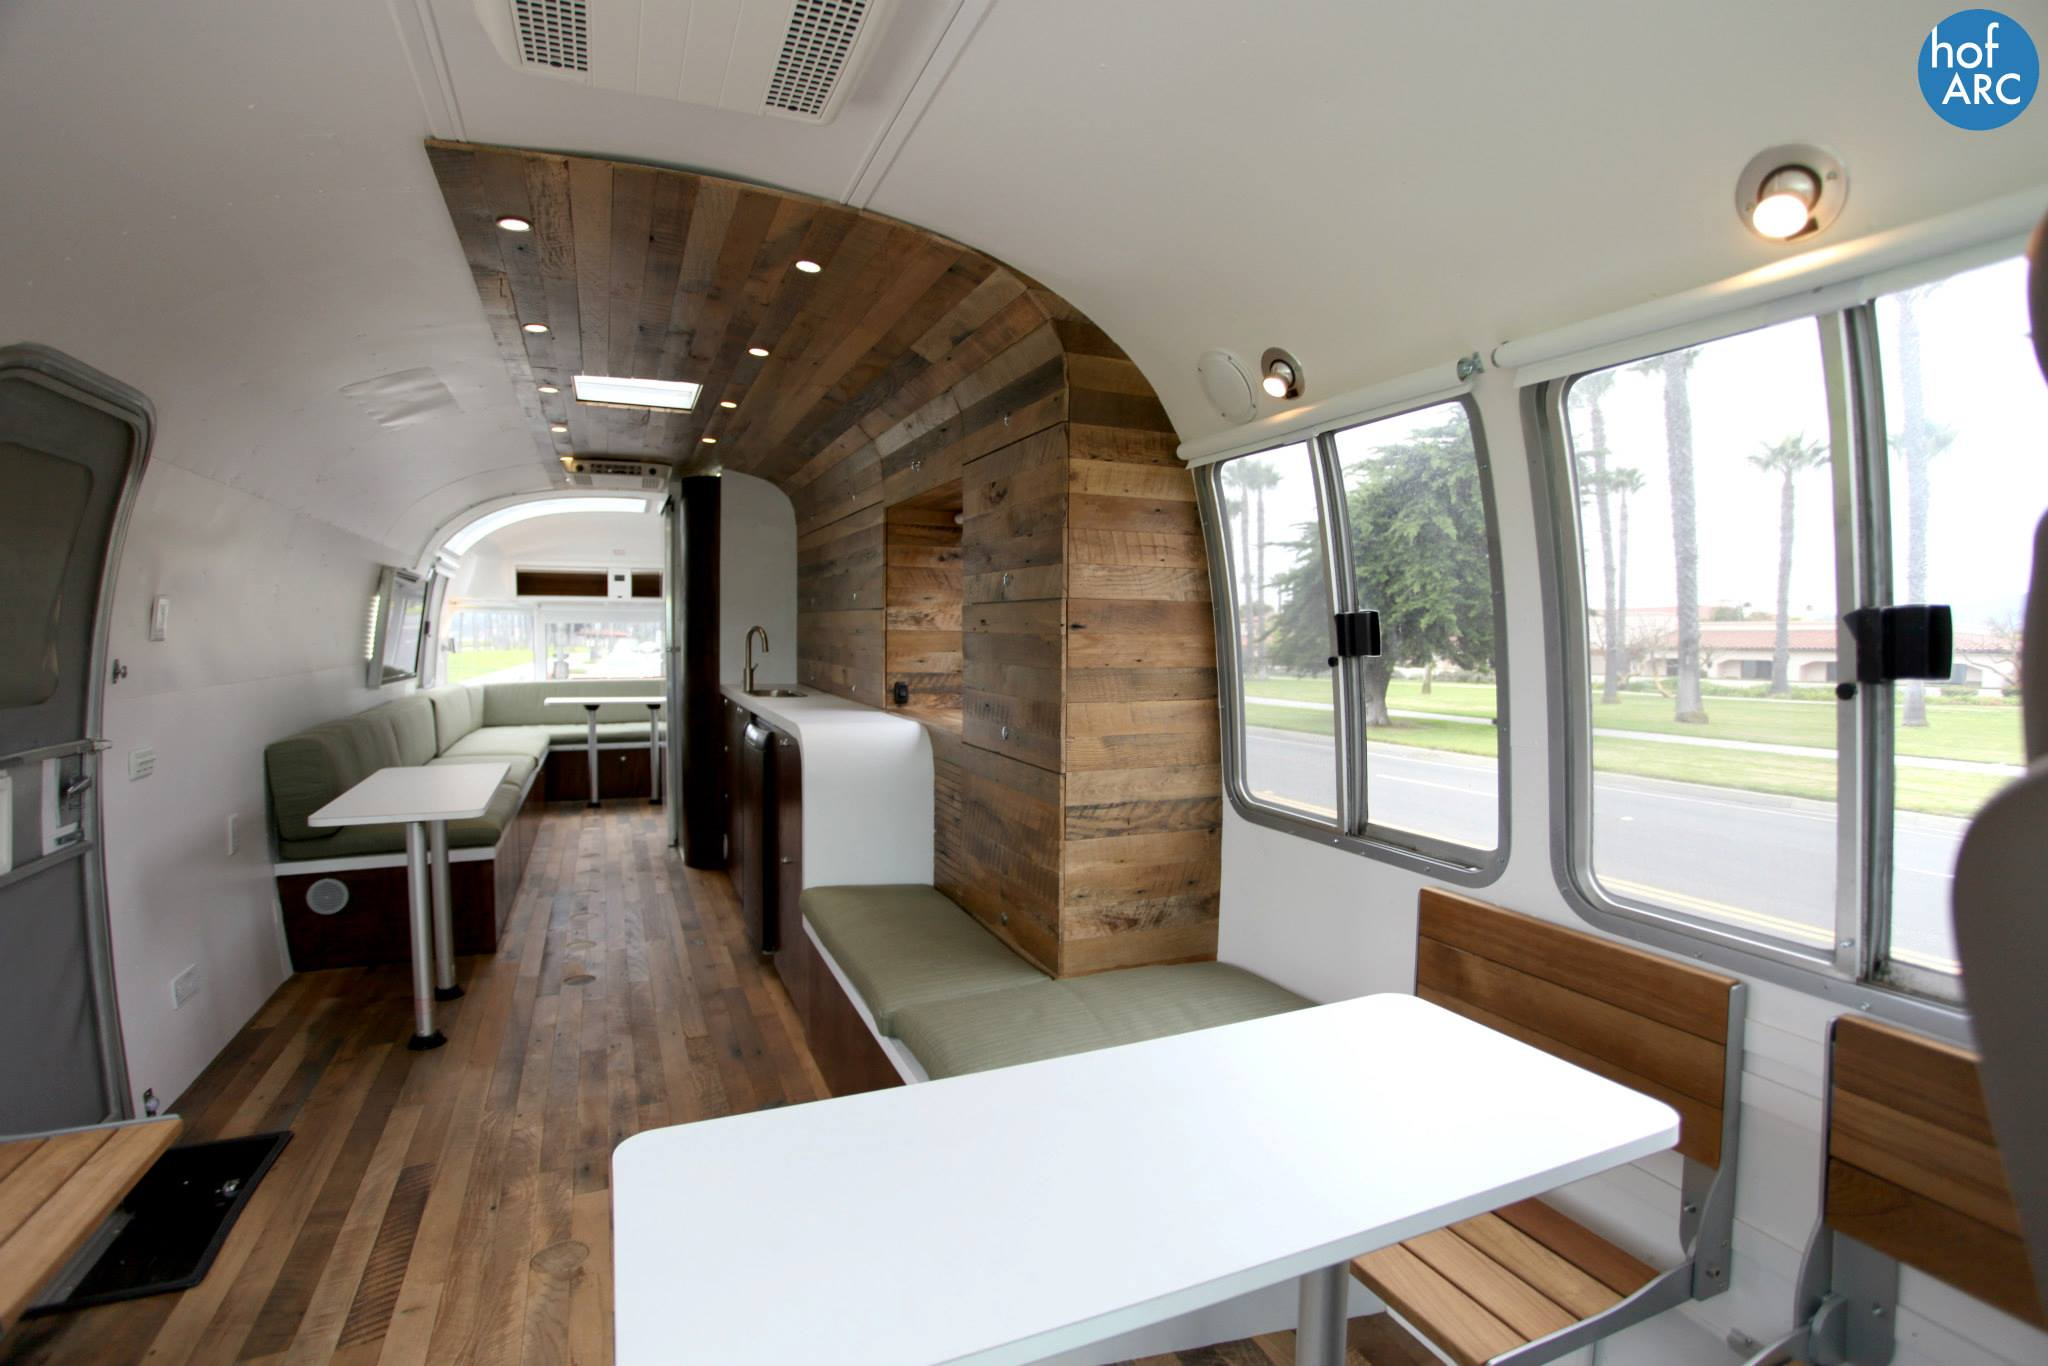 Updating Mobile Home Interior